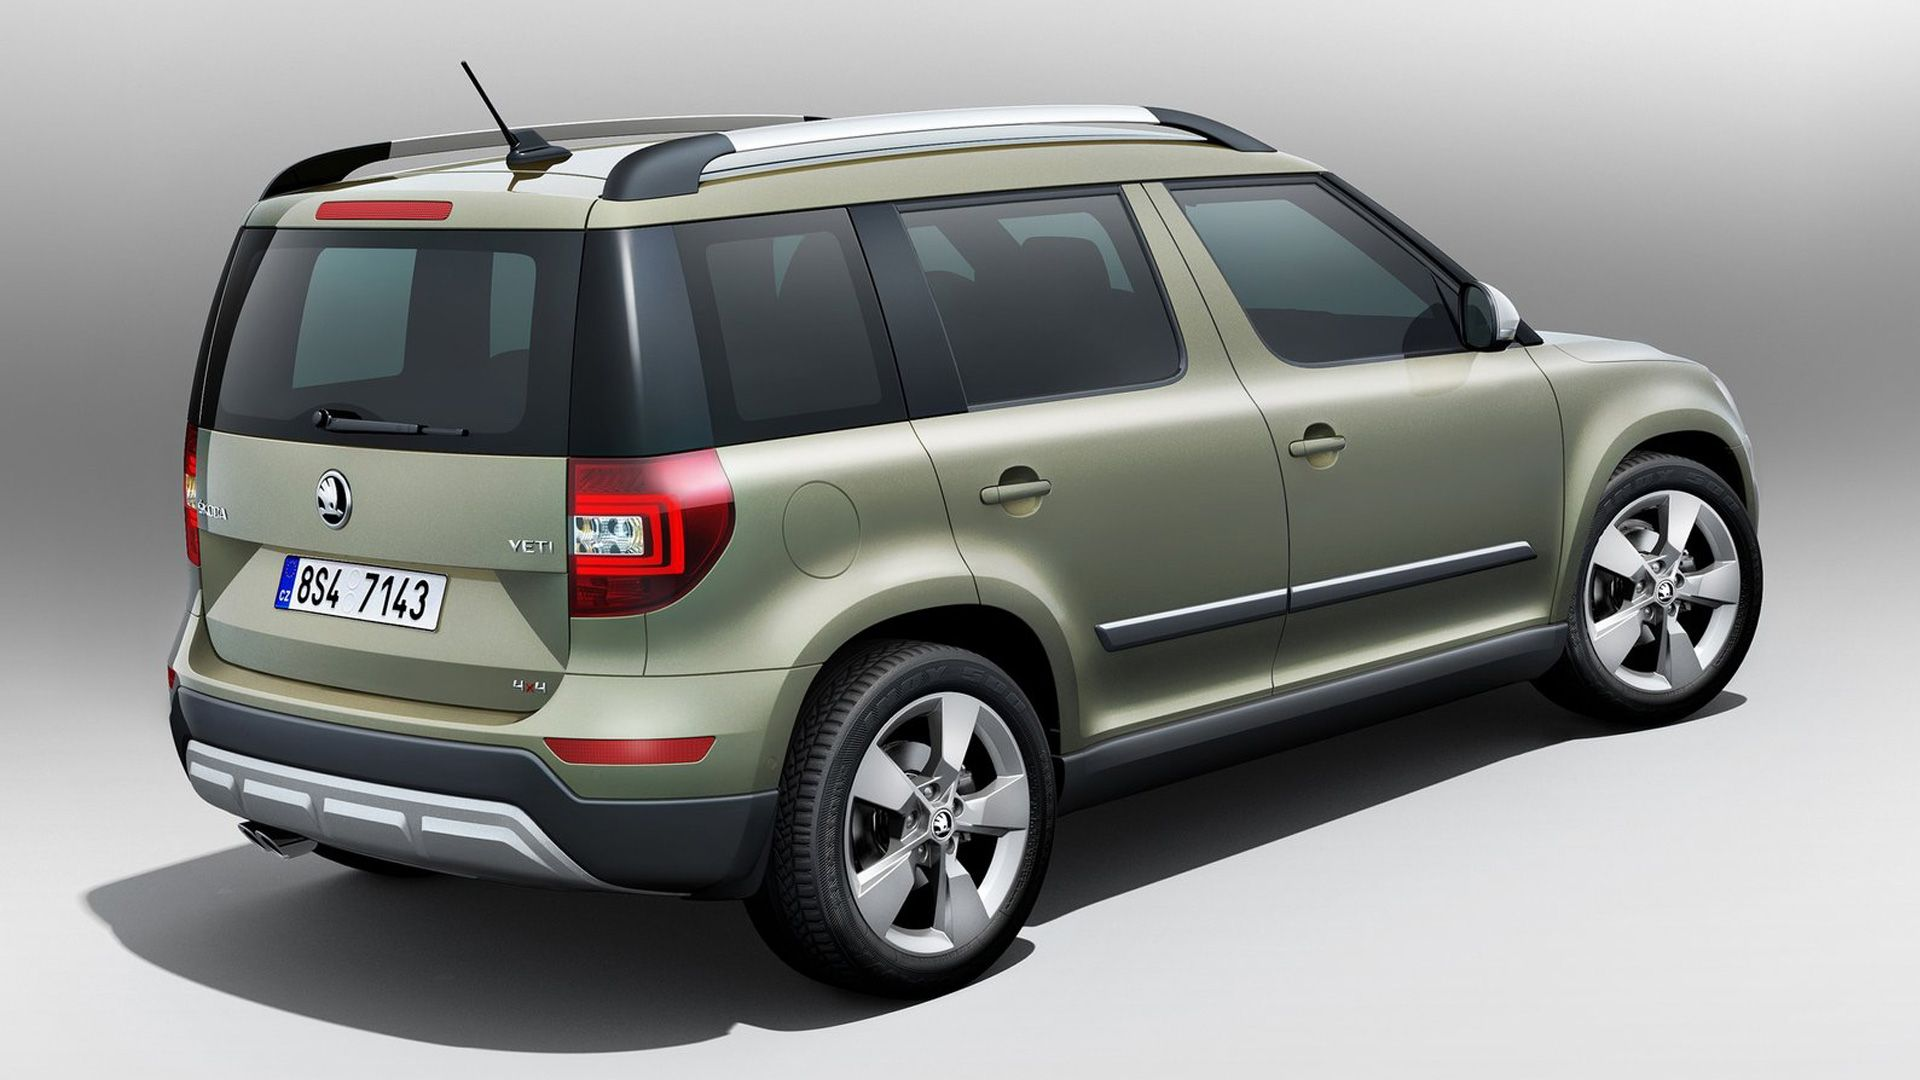 Exterior skoda yeti 2014 skoda yeti elegant and off road